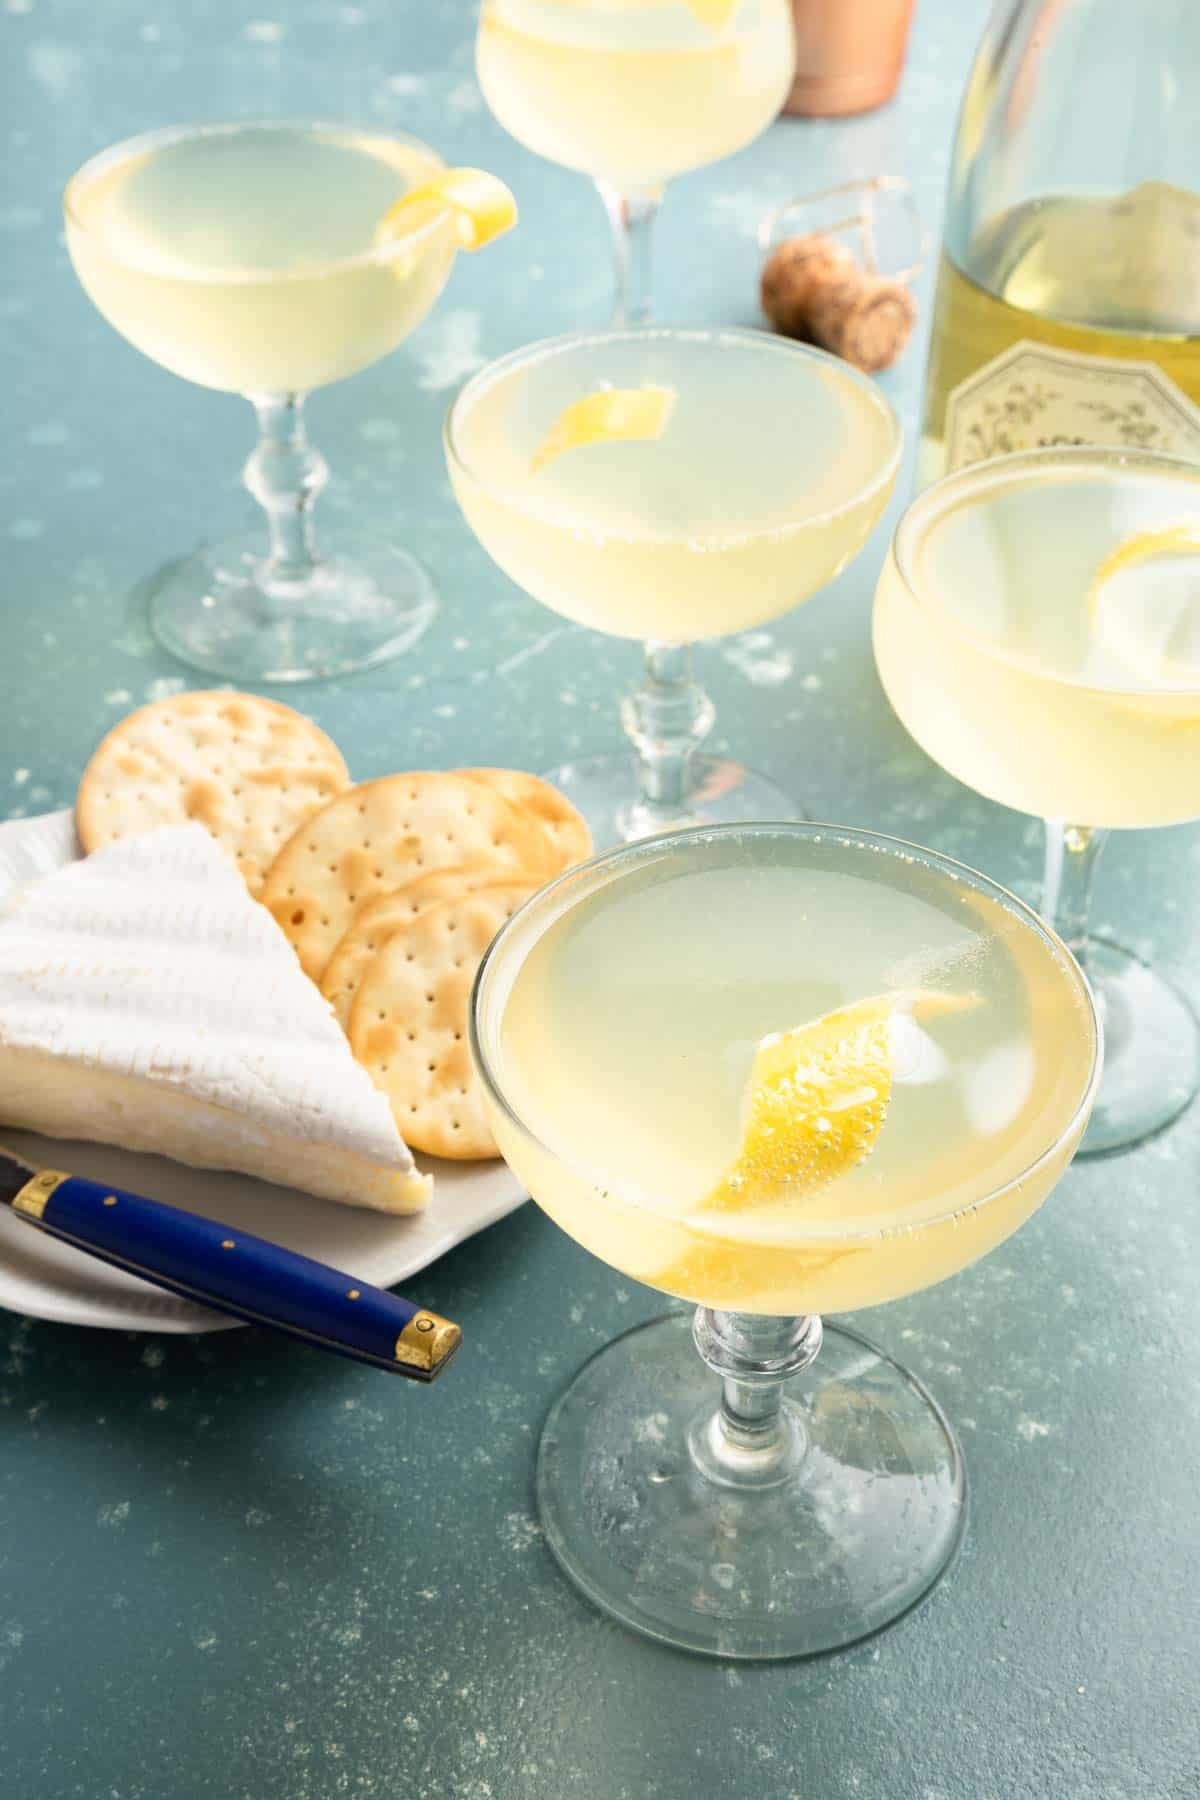 Multiple glasses of yellow cocktails with cheese and crackers on the side